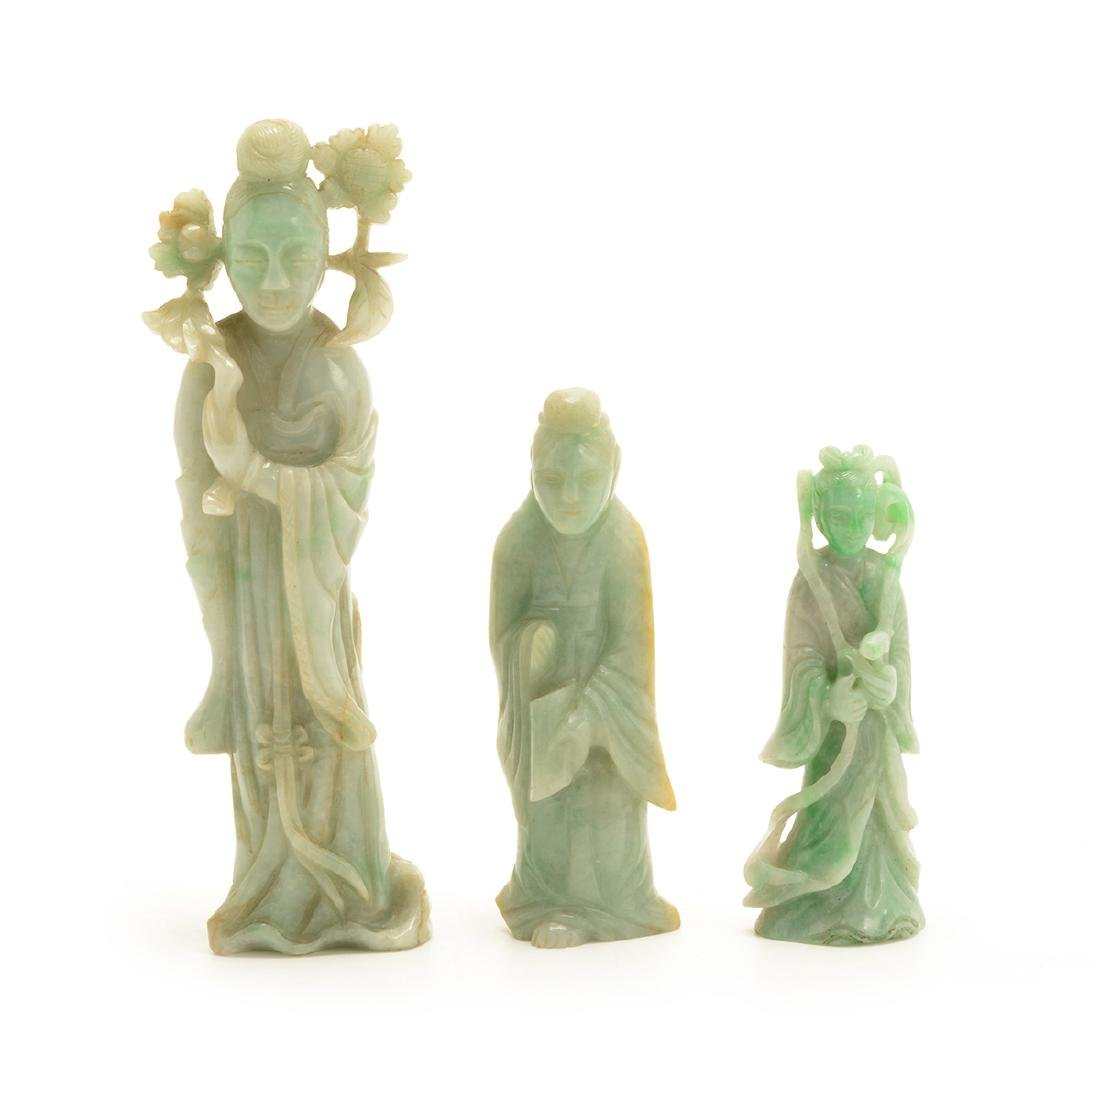 Three Green Jadeite Figural Carvings, 19th Century